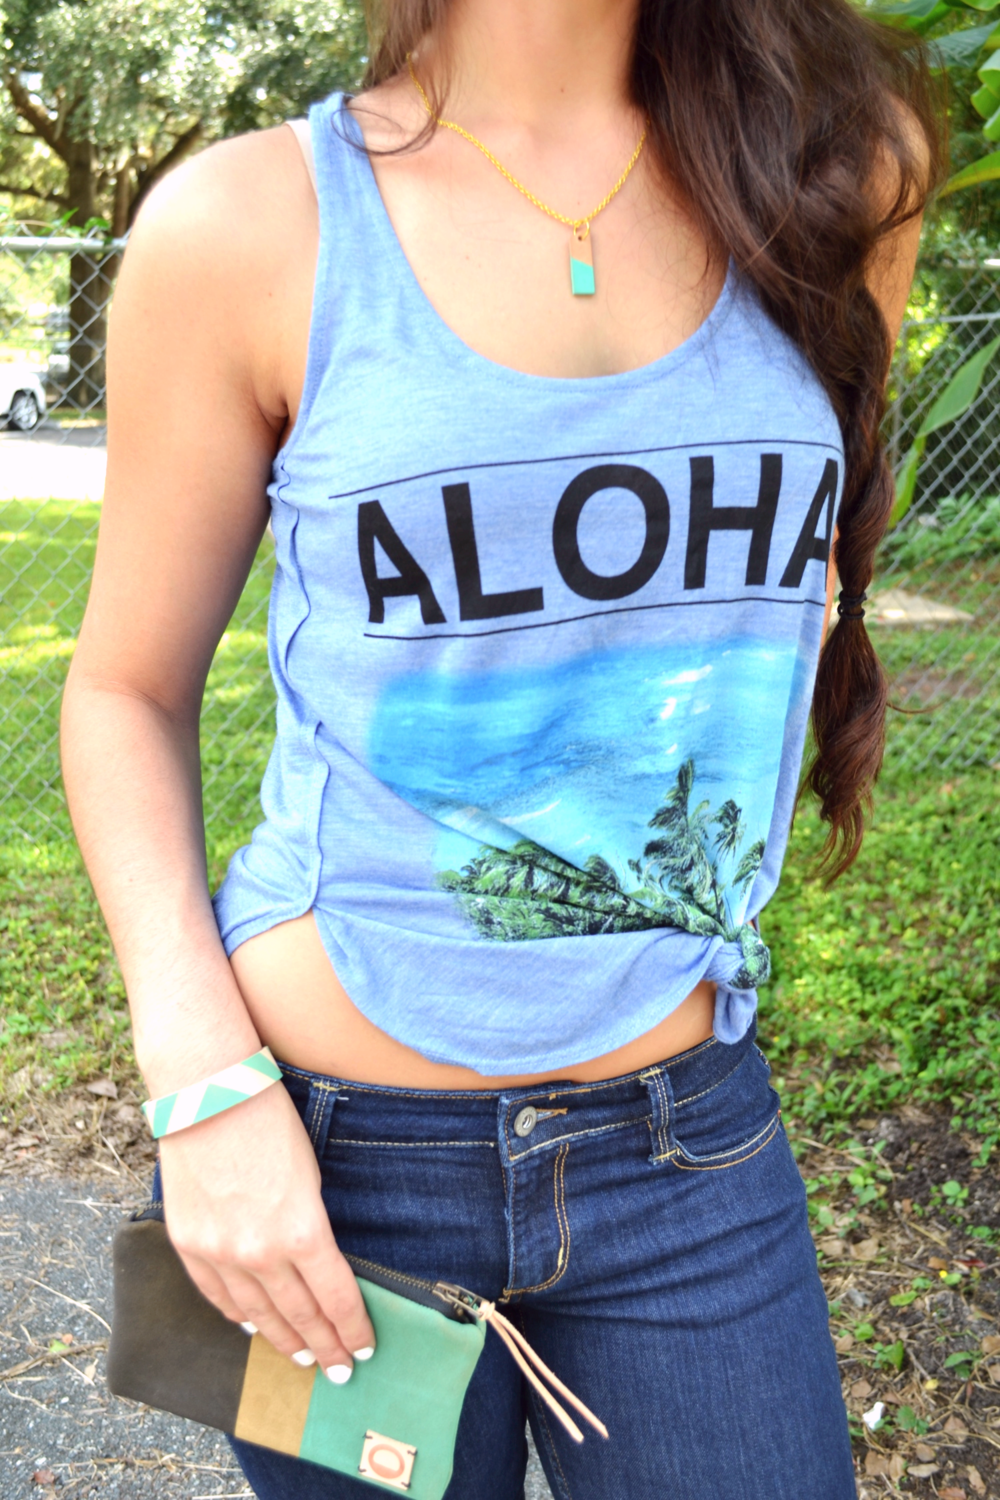 Leather Accessories + Aloha Tank